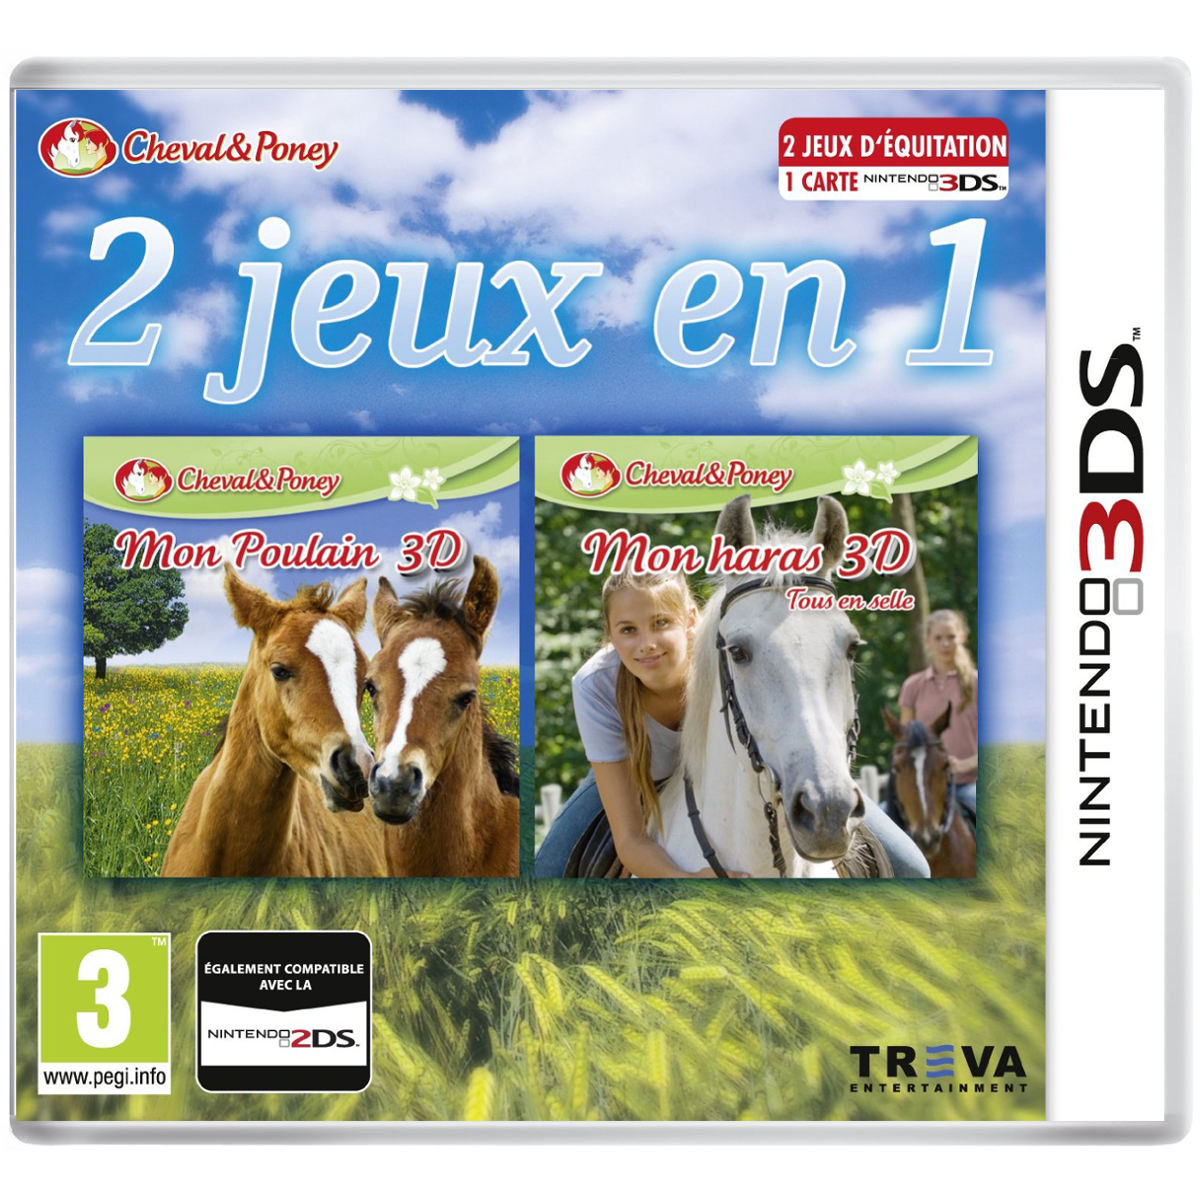 2 jeux en 1 mon poulain 3d mon haras 3d nintendo 3ds 2ds jeux nintendo 3ds koch media. Black Bedroom Furniture Sets. Home Design Ideas